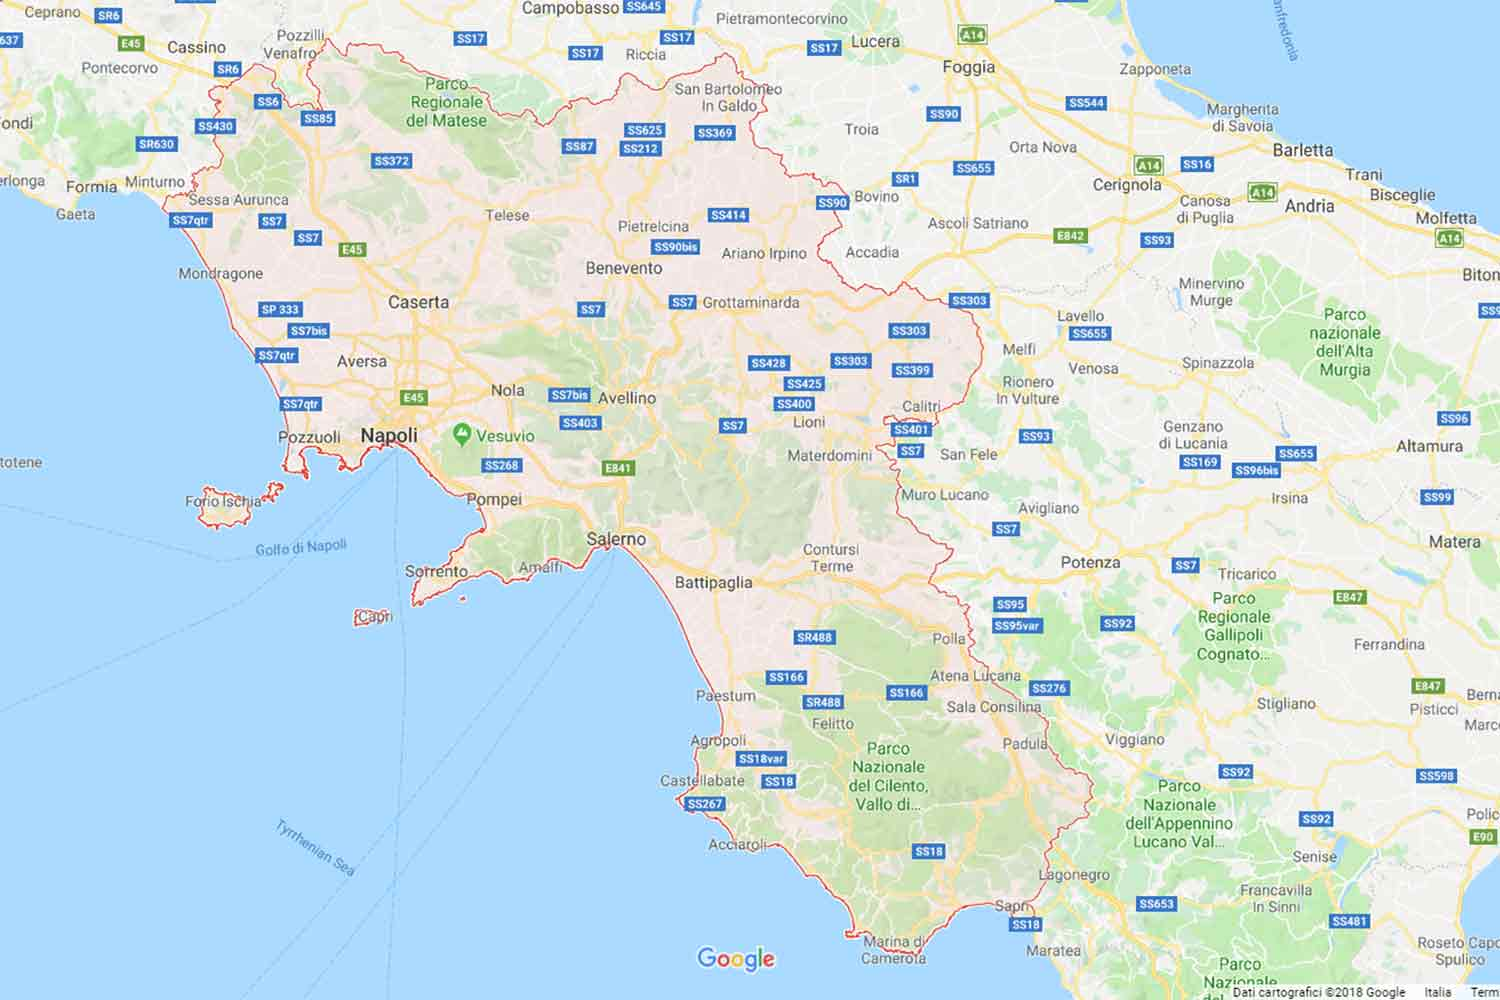 Campania - Salerno - Battipaglia Preventivi Veloci google maps